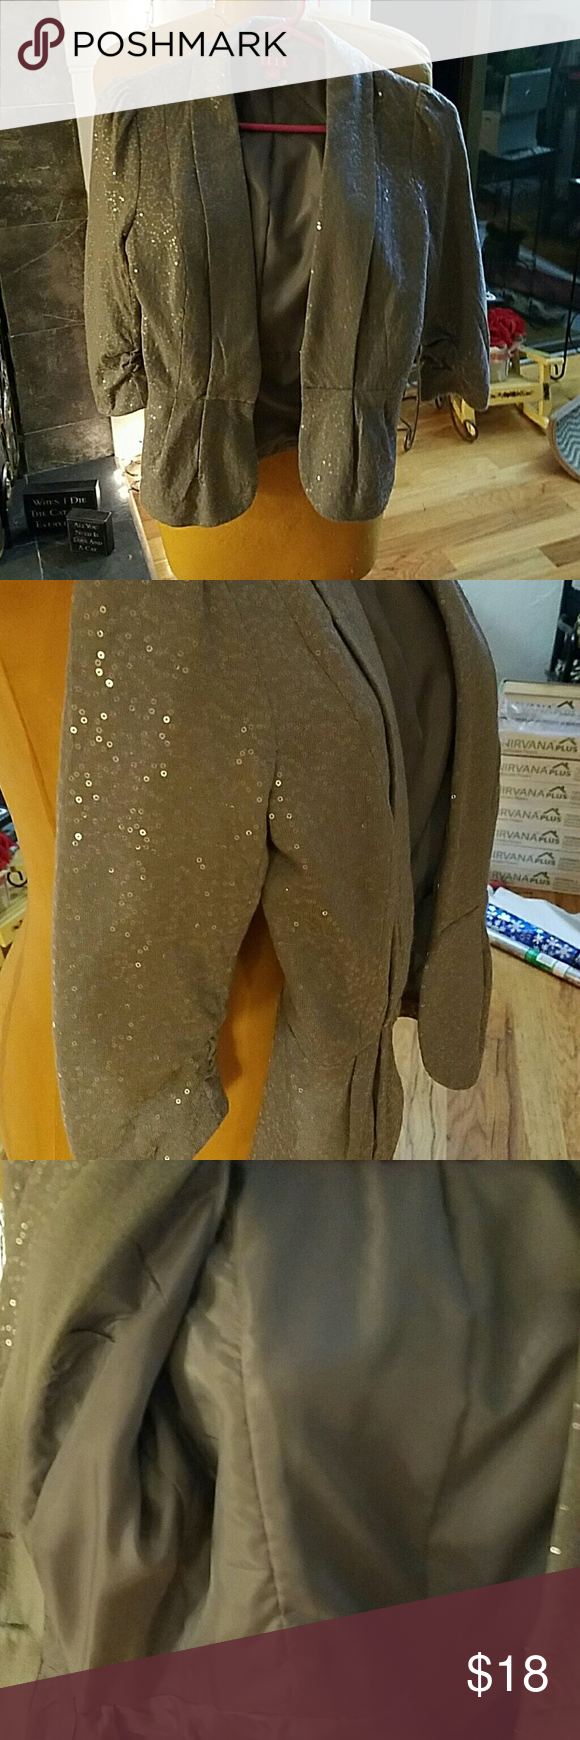 Jacket Adorable peplum style short jacket with sparkling sequins. Fully lined with hook and eye closures.  Like new Elle Jackets & Coats